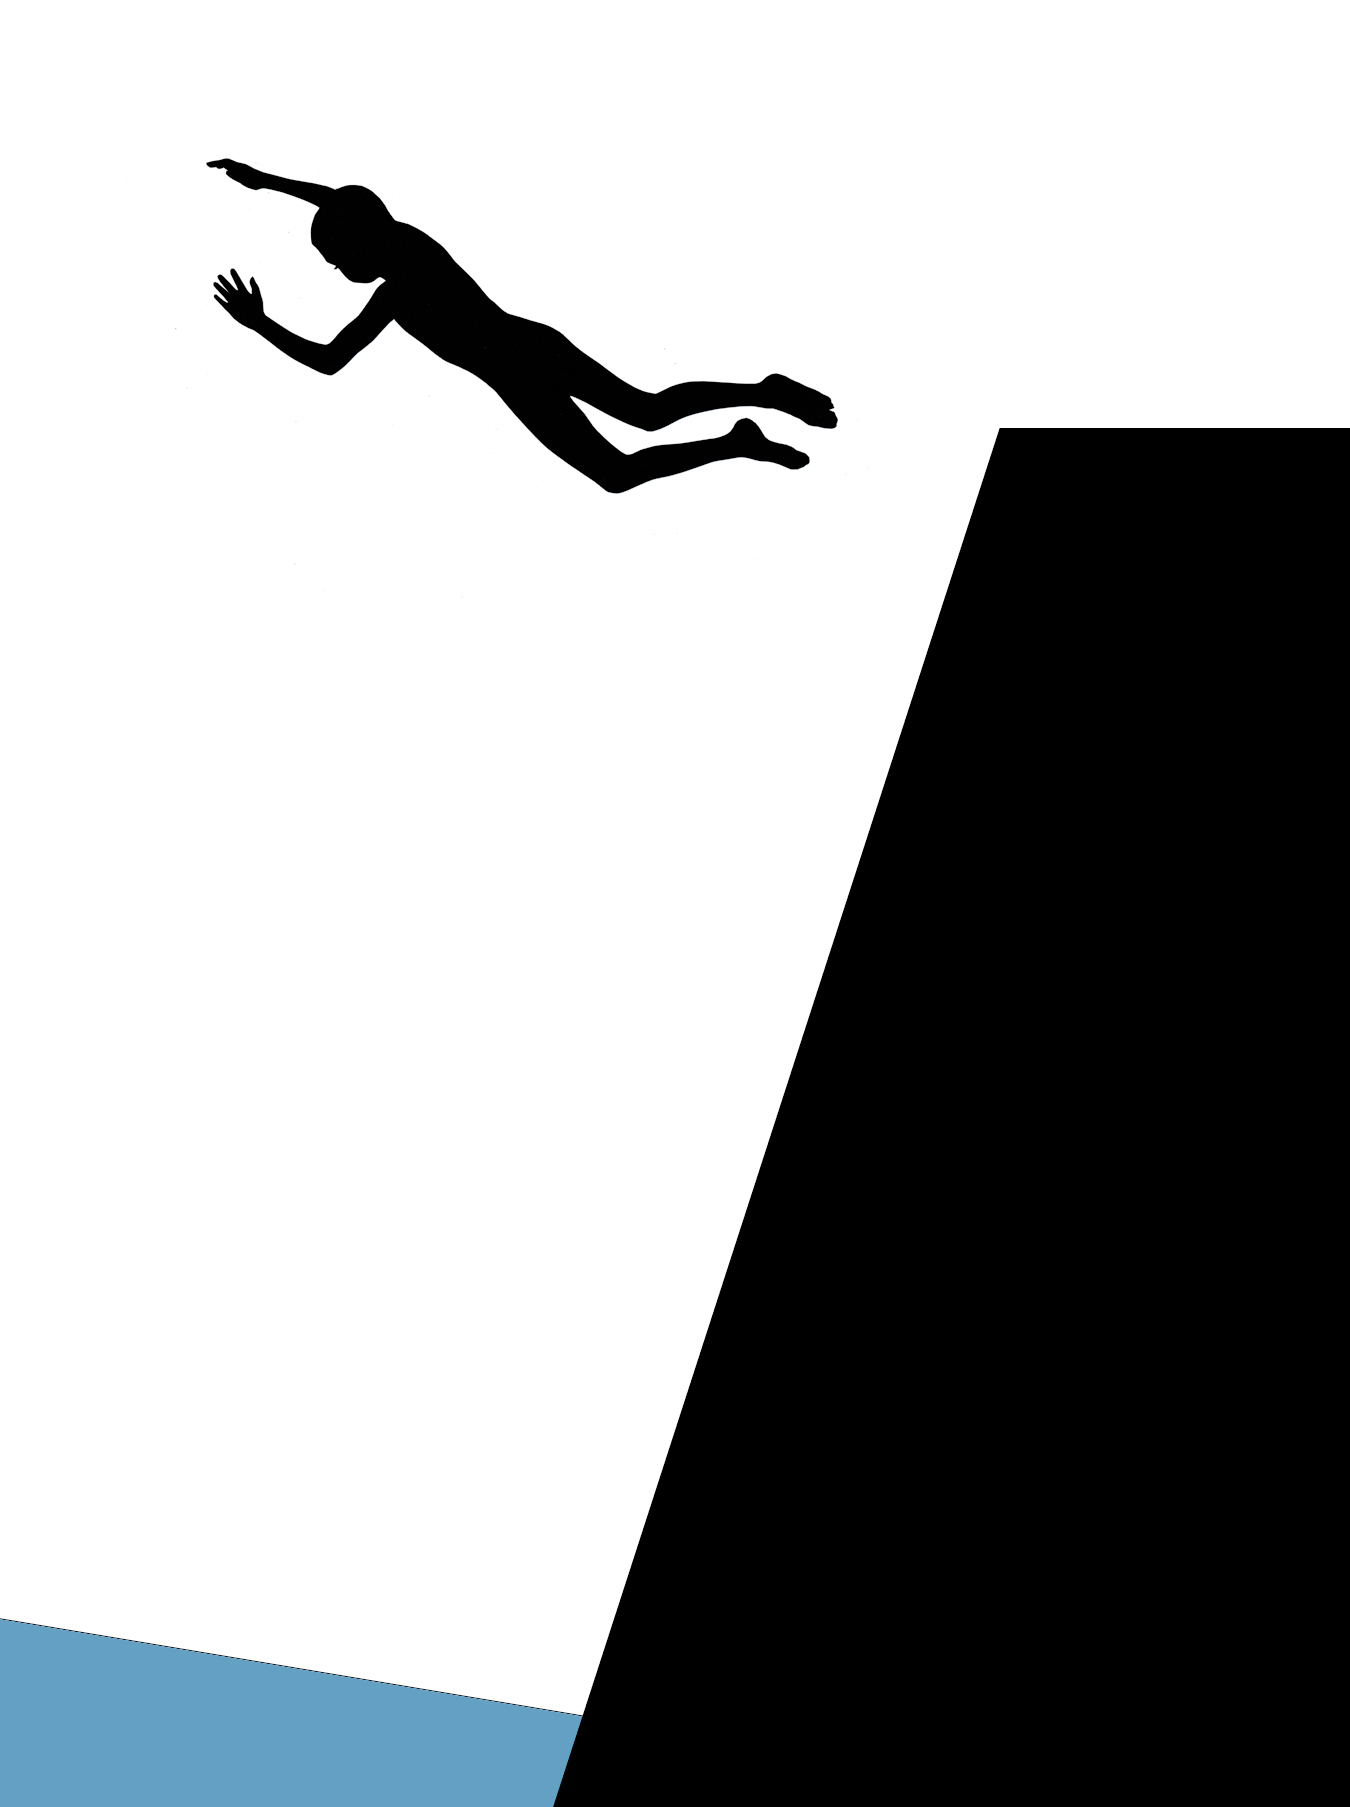 True Faith, cut paper collage, Mike Tedder